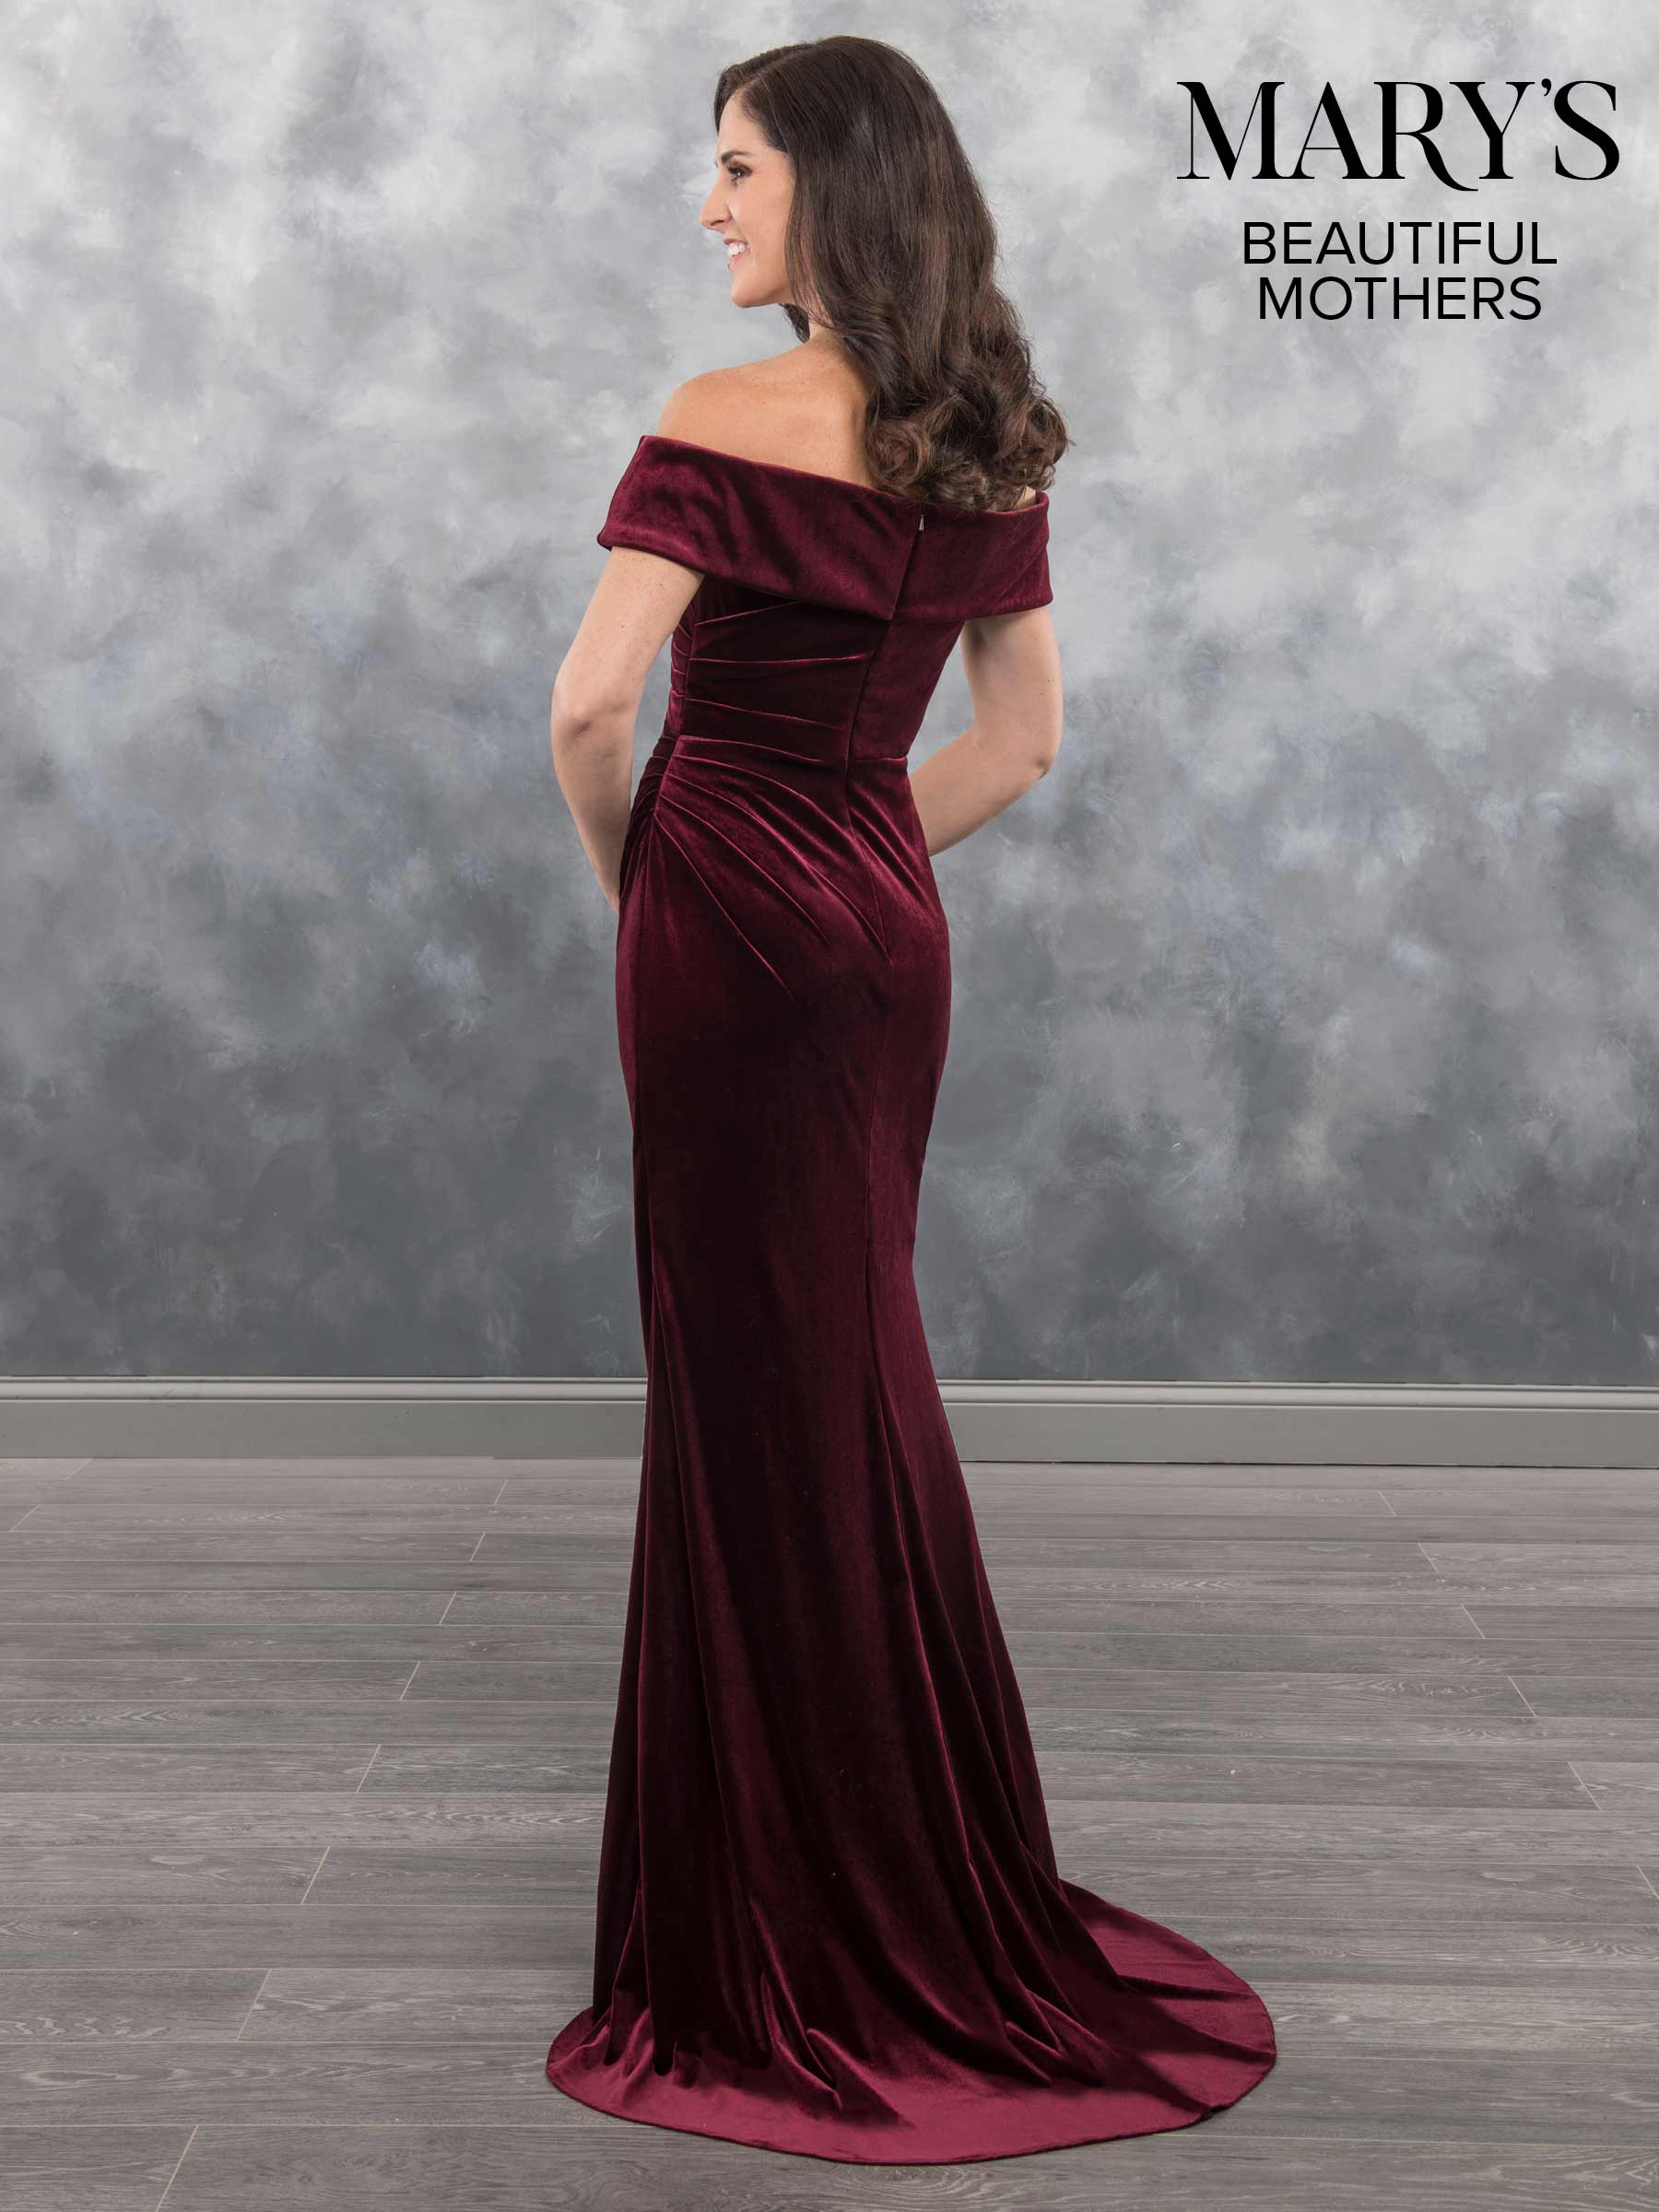 Mother Of The Bride Dresses | Beautiful Mothers | Style - MB8036